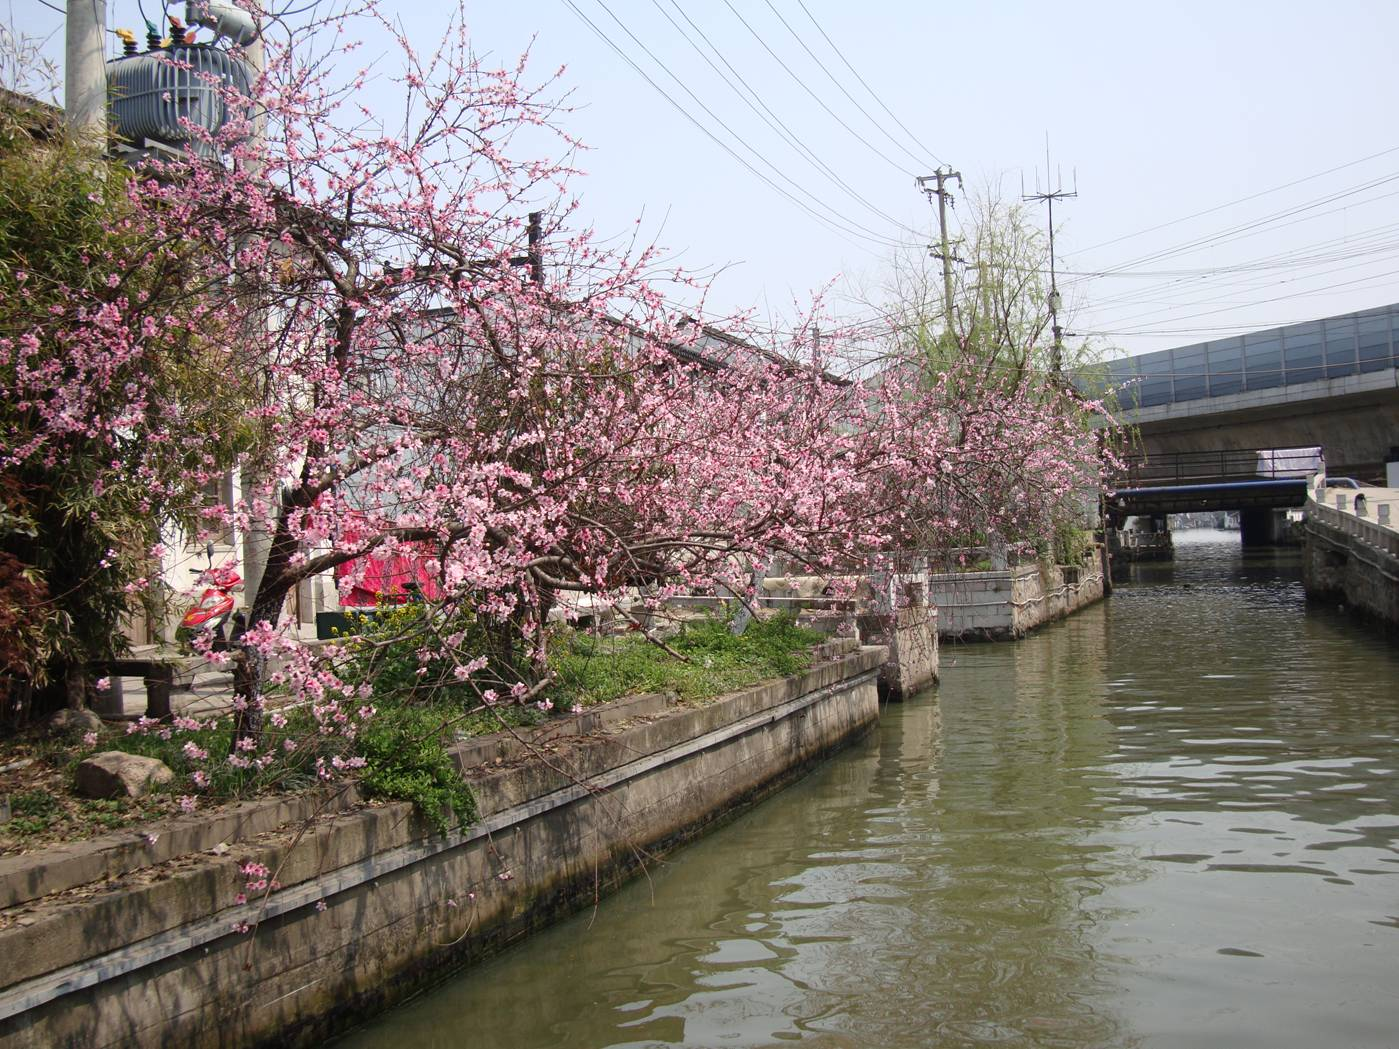 Picture:  It's Spring, and many sections of the canal are lined with pink blossomed trees.  Suzhou, China